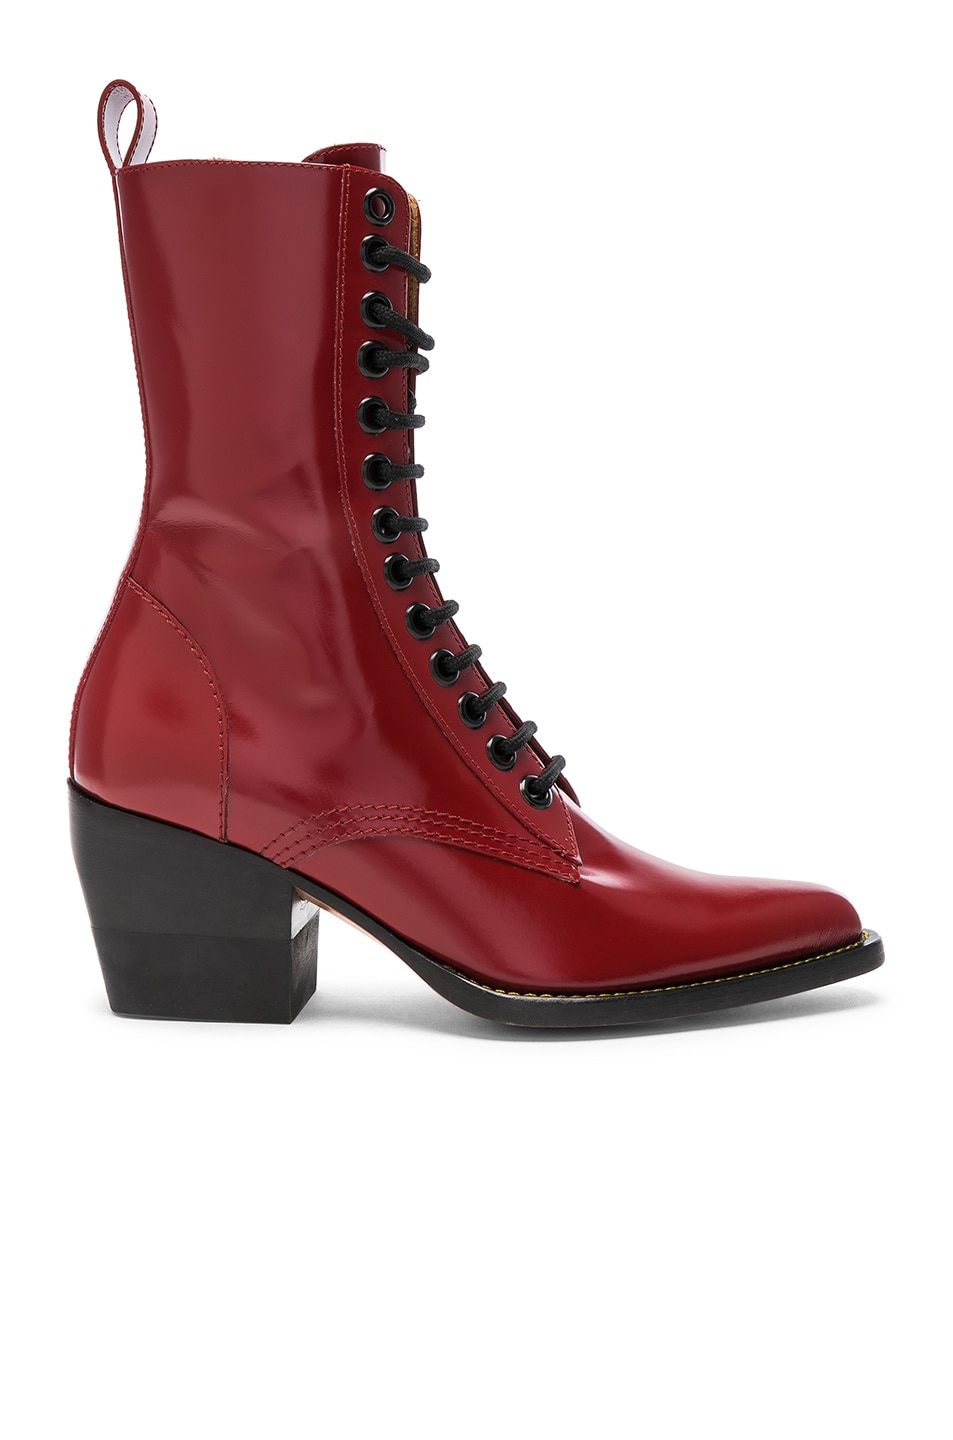 Image 1 of Chloe Rylee Shiny Leather Lace Up Buckle Boots in Intense Red